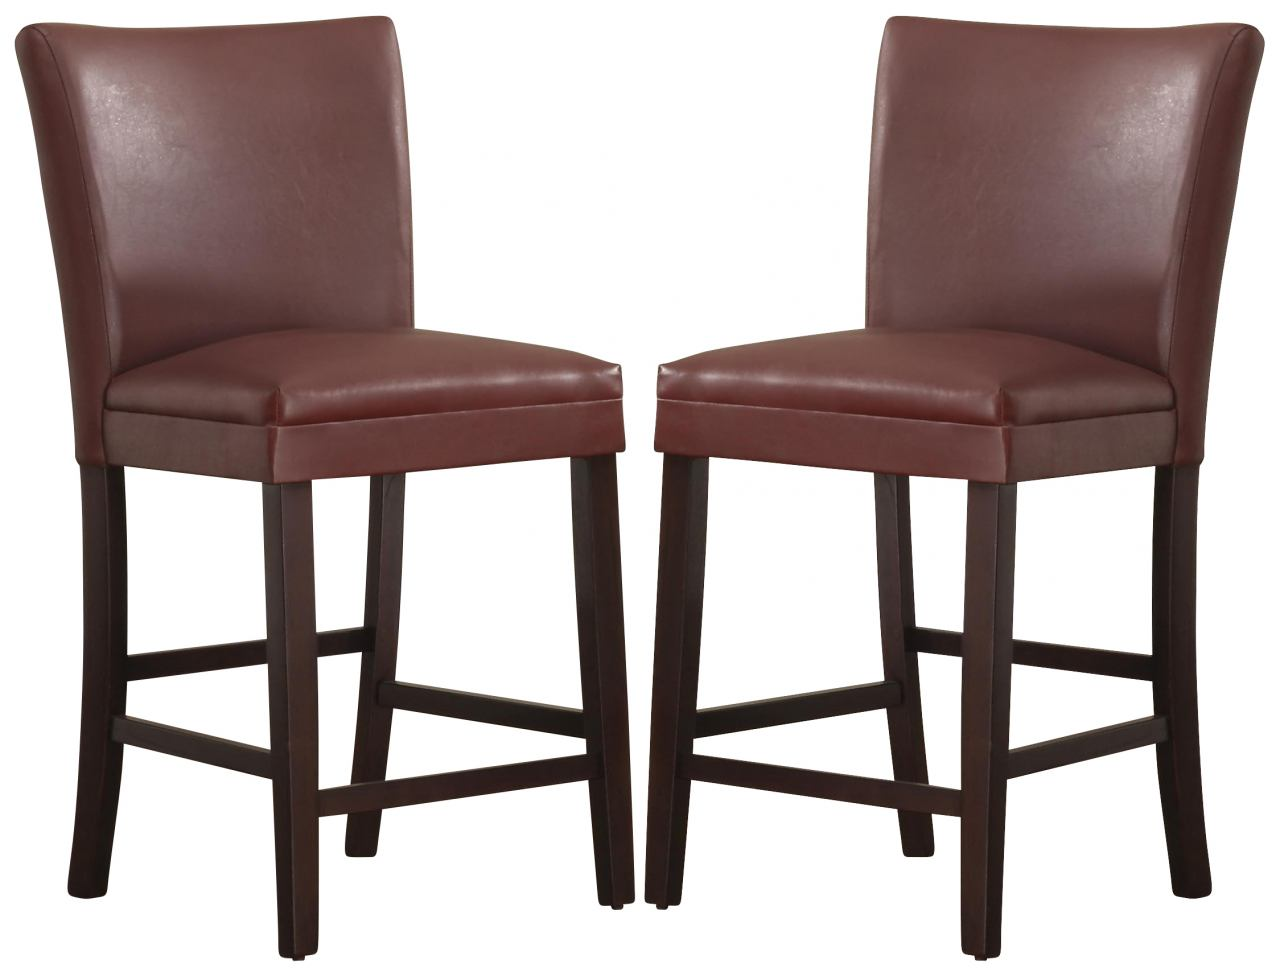 Homelegance Belvedere Counter Height Chair in Lava Red (set of 2) 3276R-24